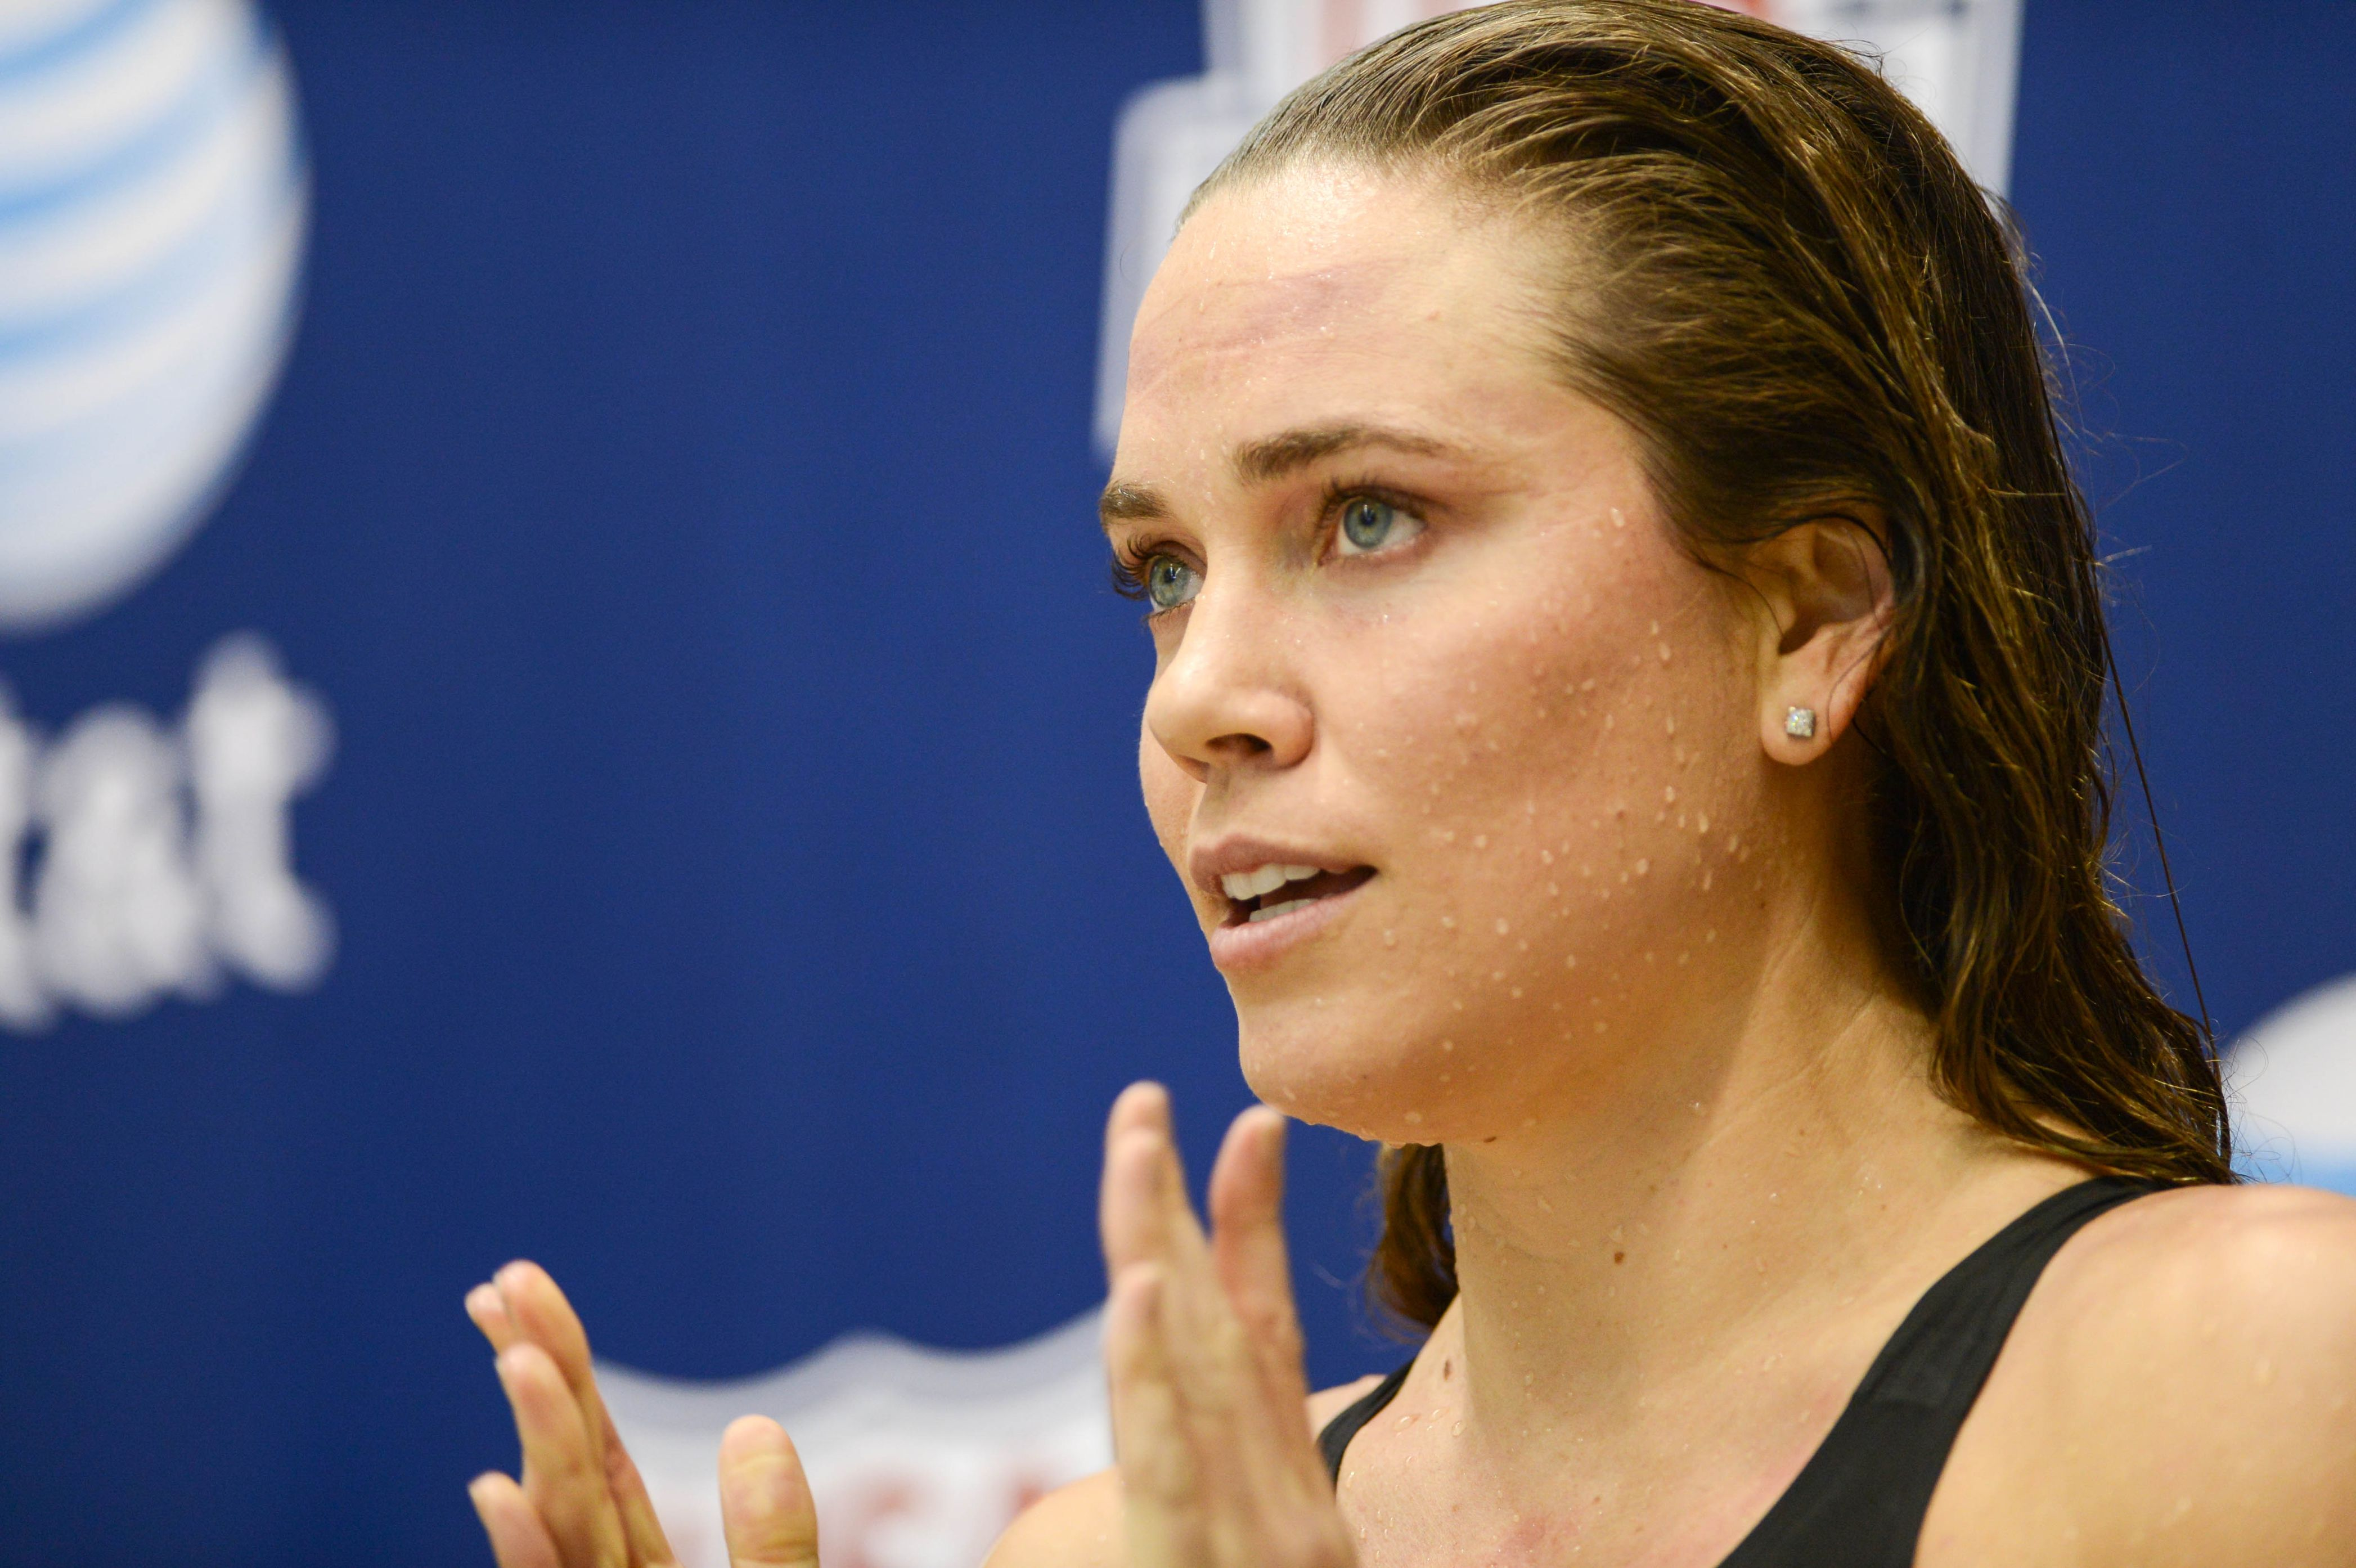 Natalie Coughlin earned a  million dollar salary - leaving the net worth at 1 million in 2017